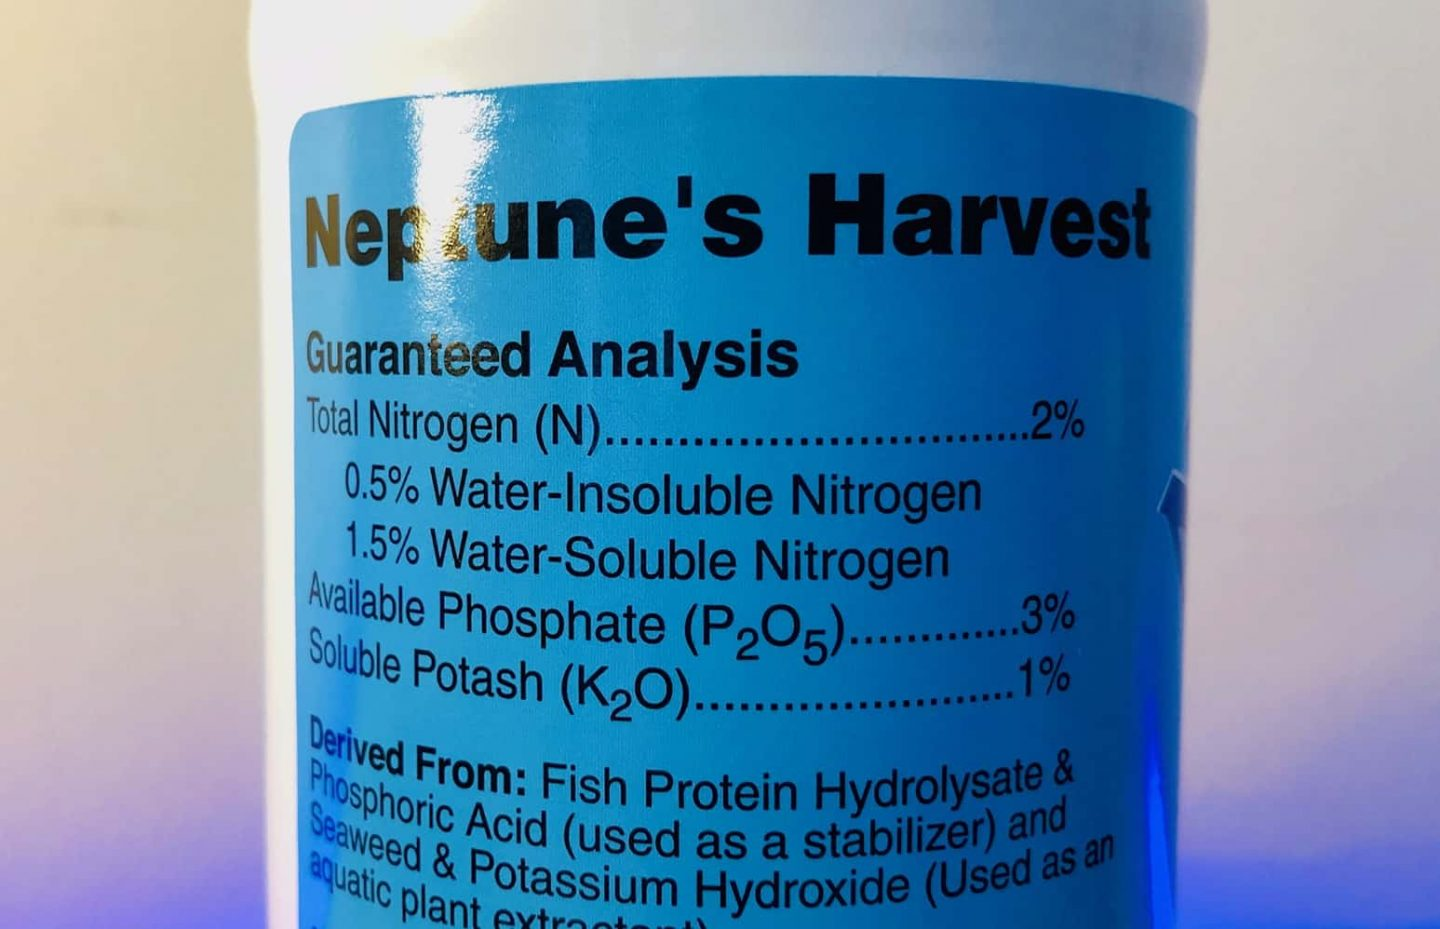 Neptune's Harvest Fertilizer